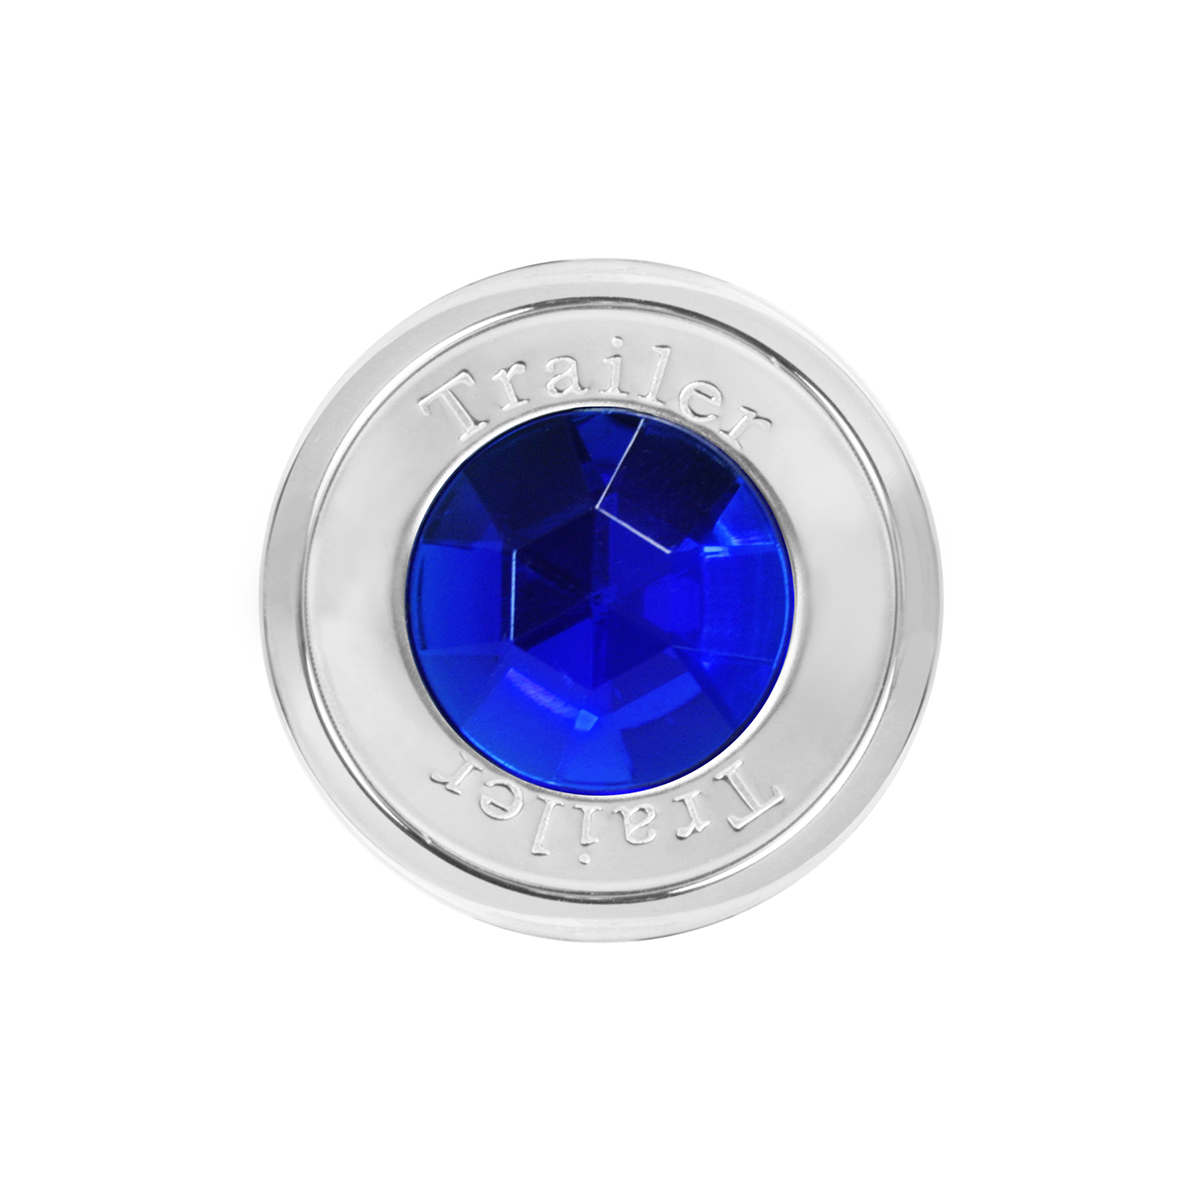 95821 Trailer Air Control Knob w/ Blue Crystal